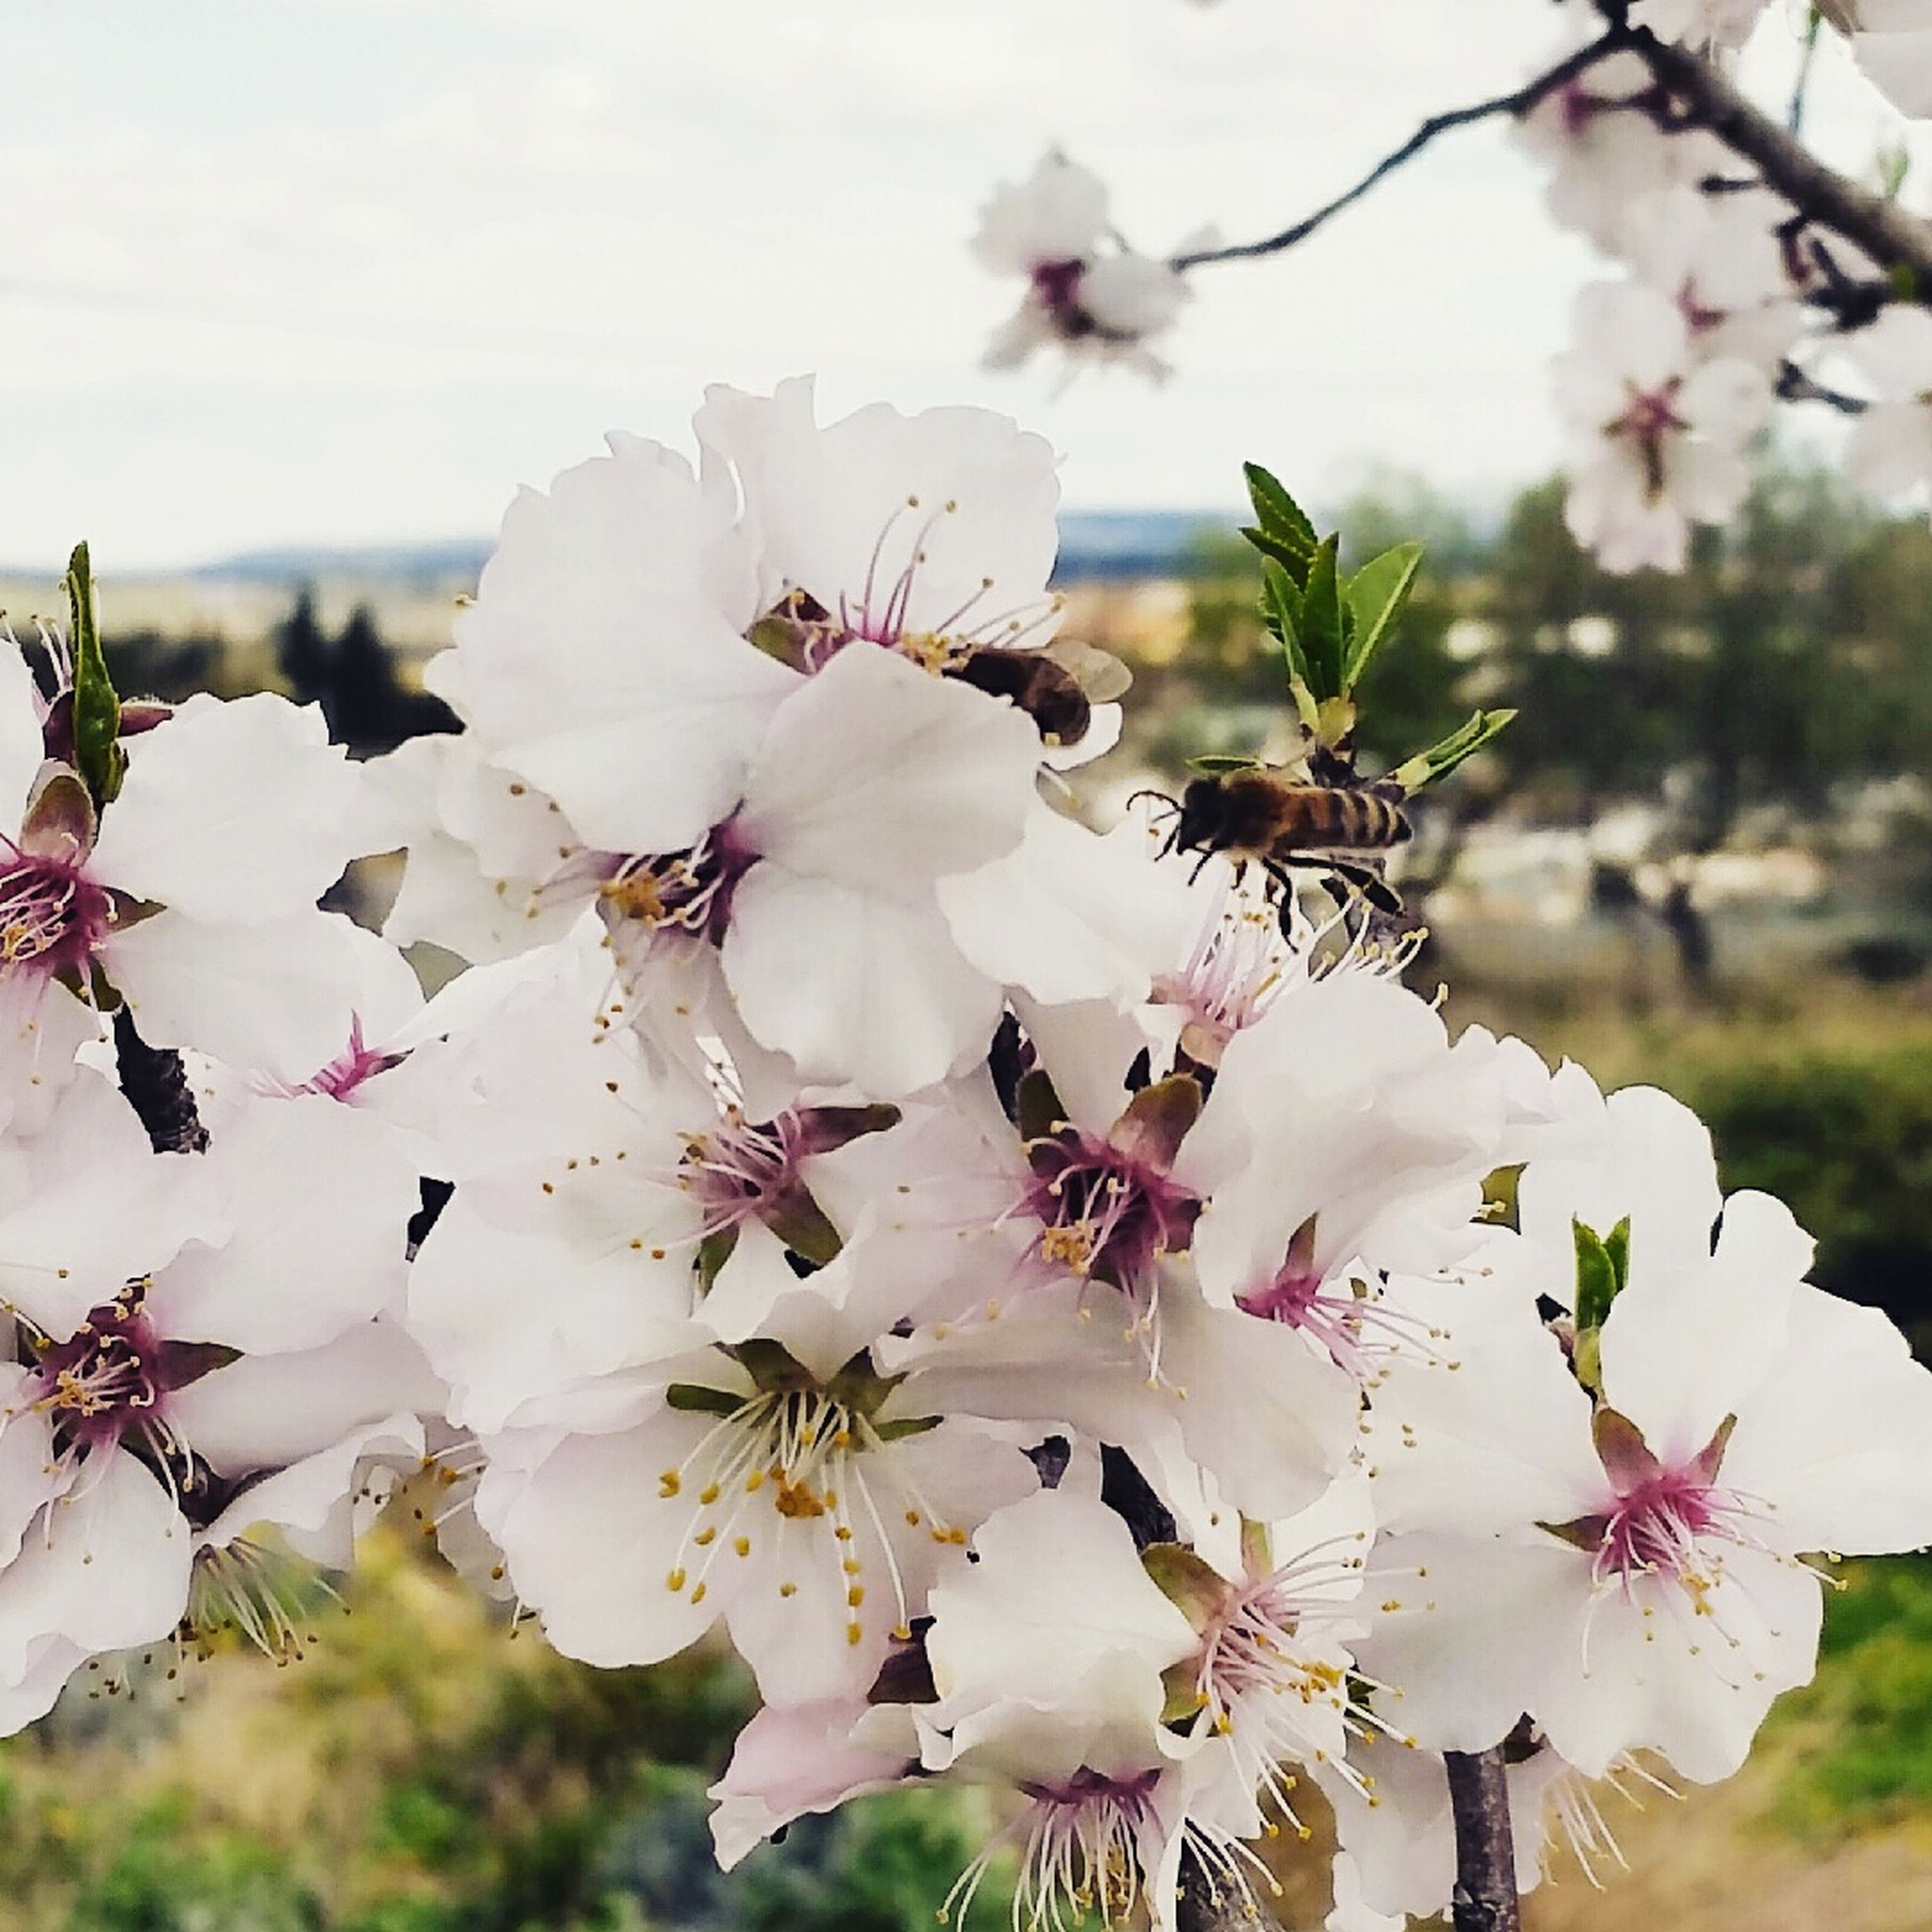 flower, freshness, fragility, growth, white color, petal, beauty in nature, tree, cherry blossom, focus on foreground, branch, nature, blossom, cherry tree, close-up, in bloom, blooming, flower head, springtime, twig